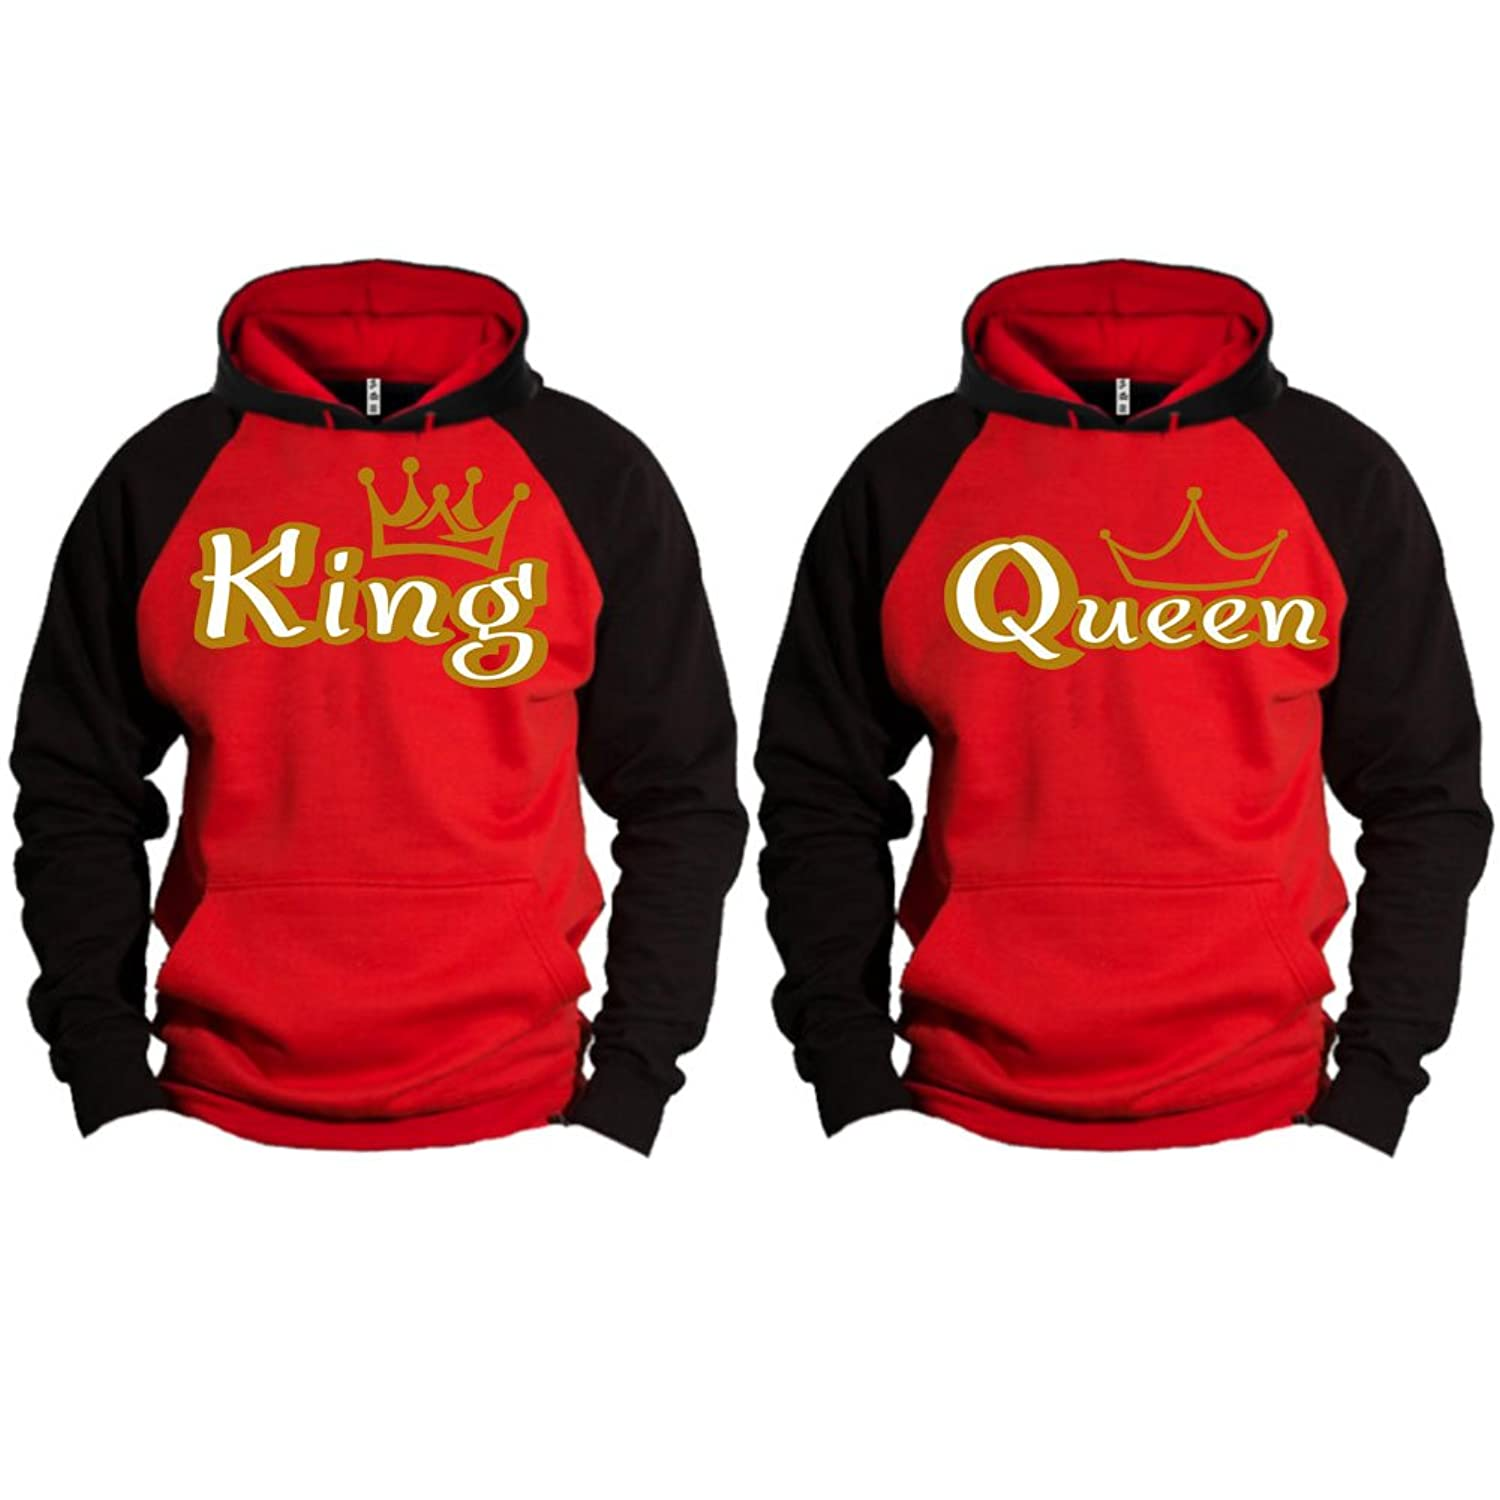 f38f5d67f6 80% cotton. S&R GOLD King Queen Crown Raglan Hoodie Pullover Hooded  Sweatshirt The only authorized seller is Gaston Ladybird.